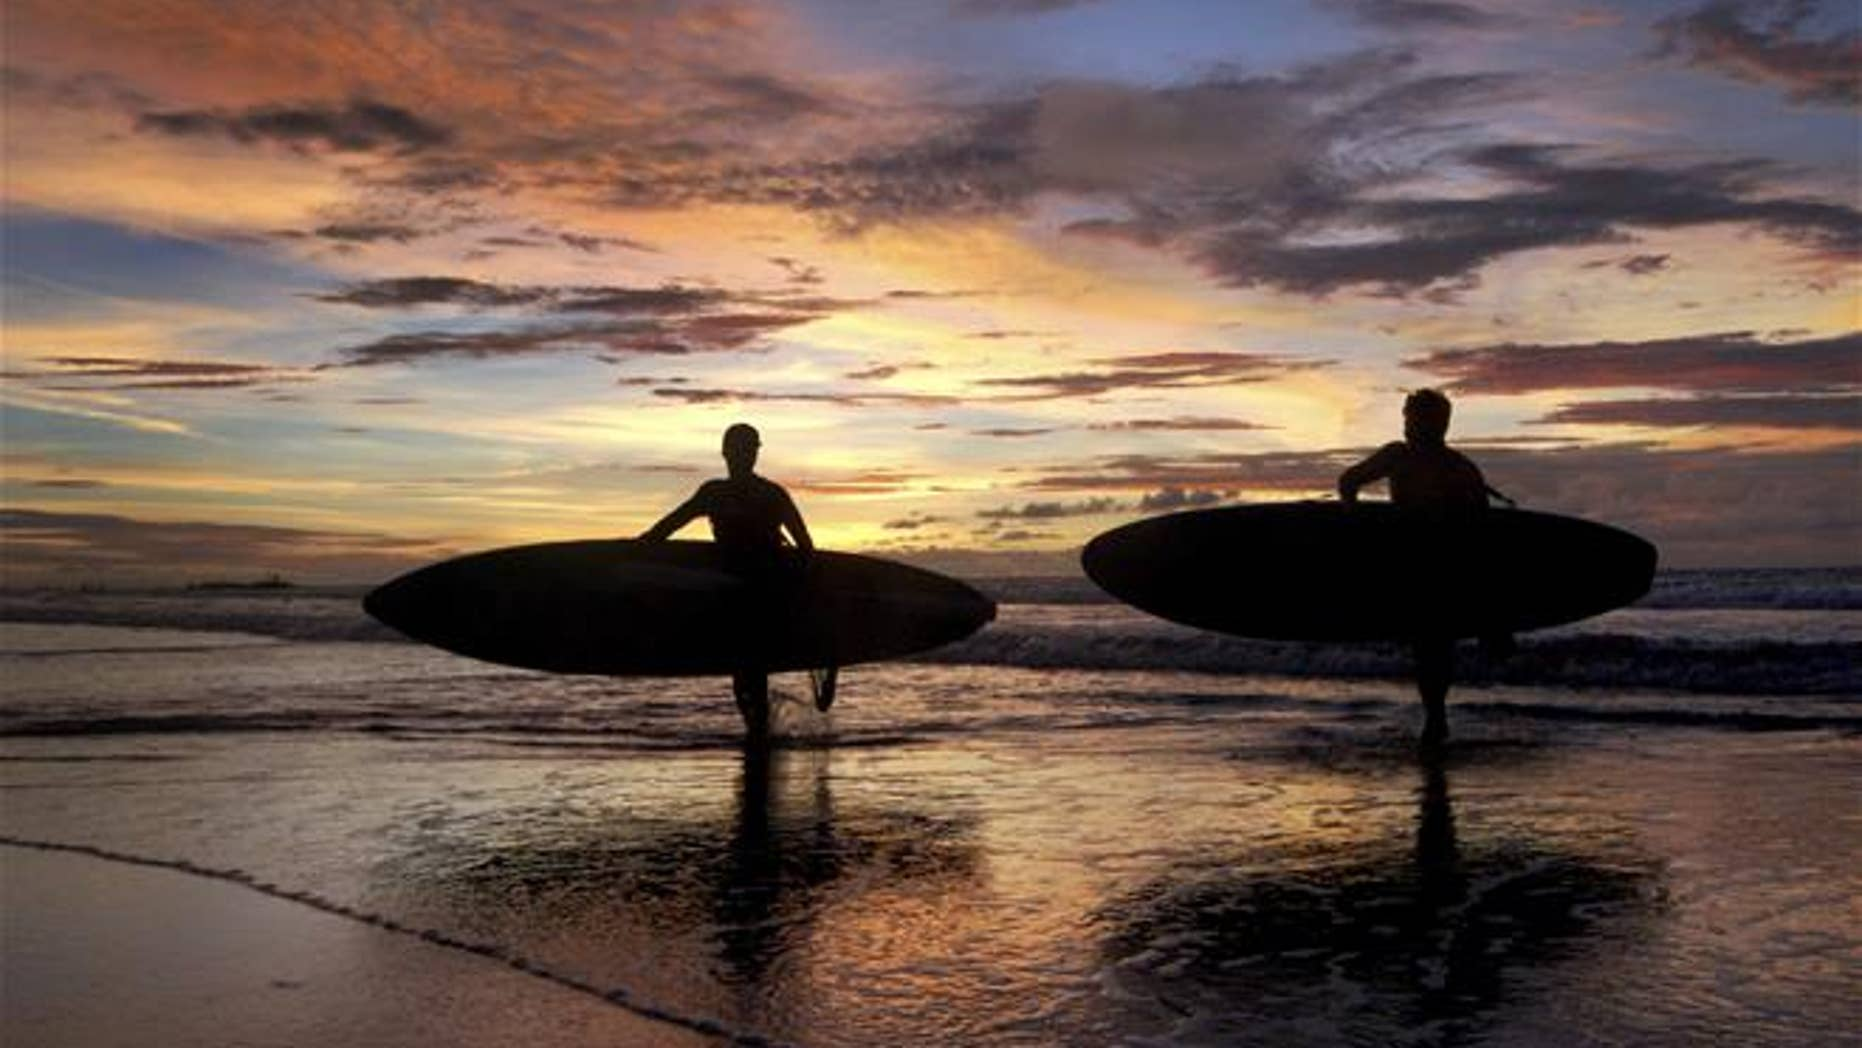 Two surfers carrying their boards are silhouetted against the sunset at Kuta Beach in Bali, Indonesia.